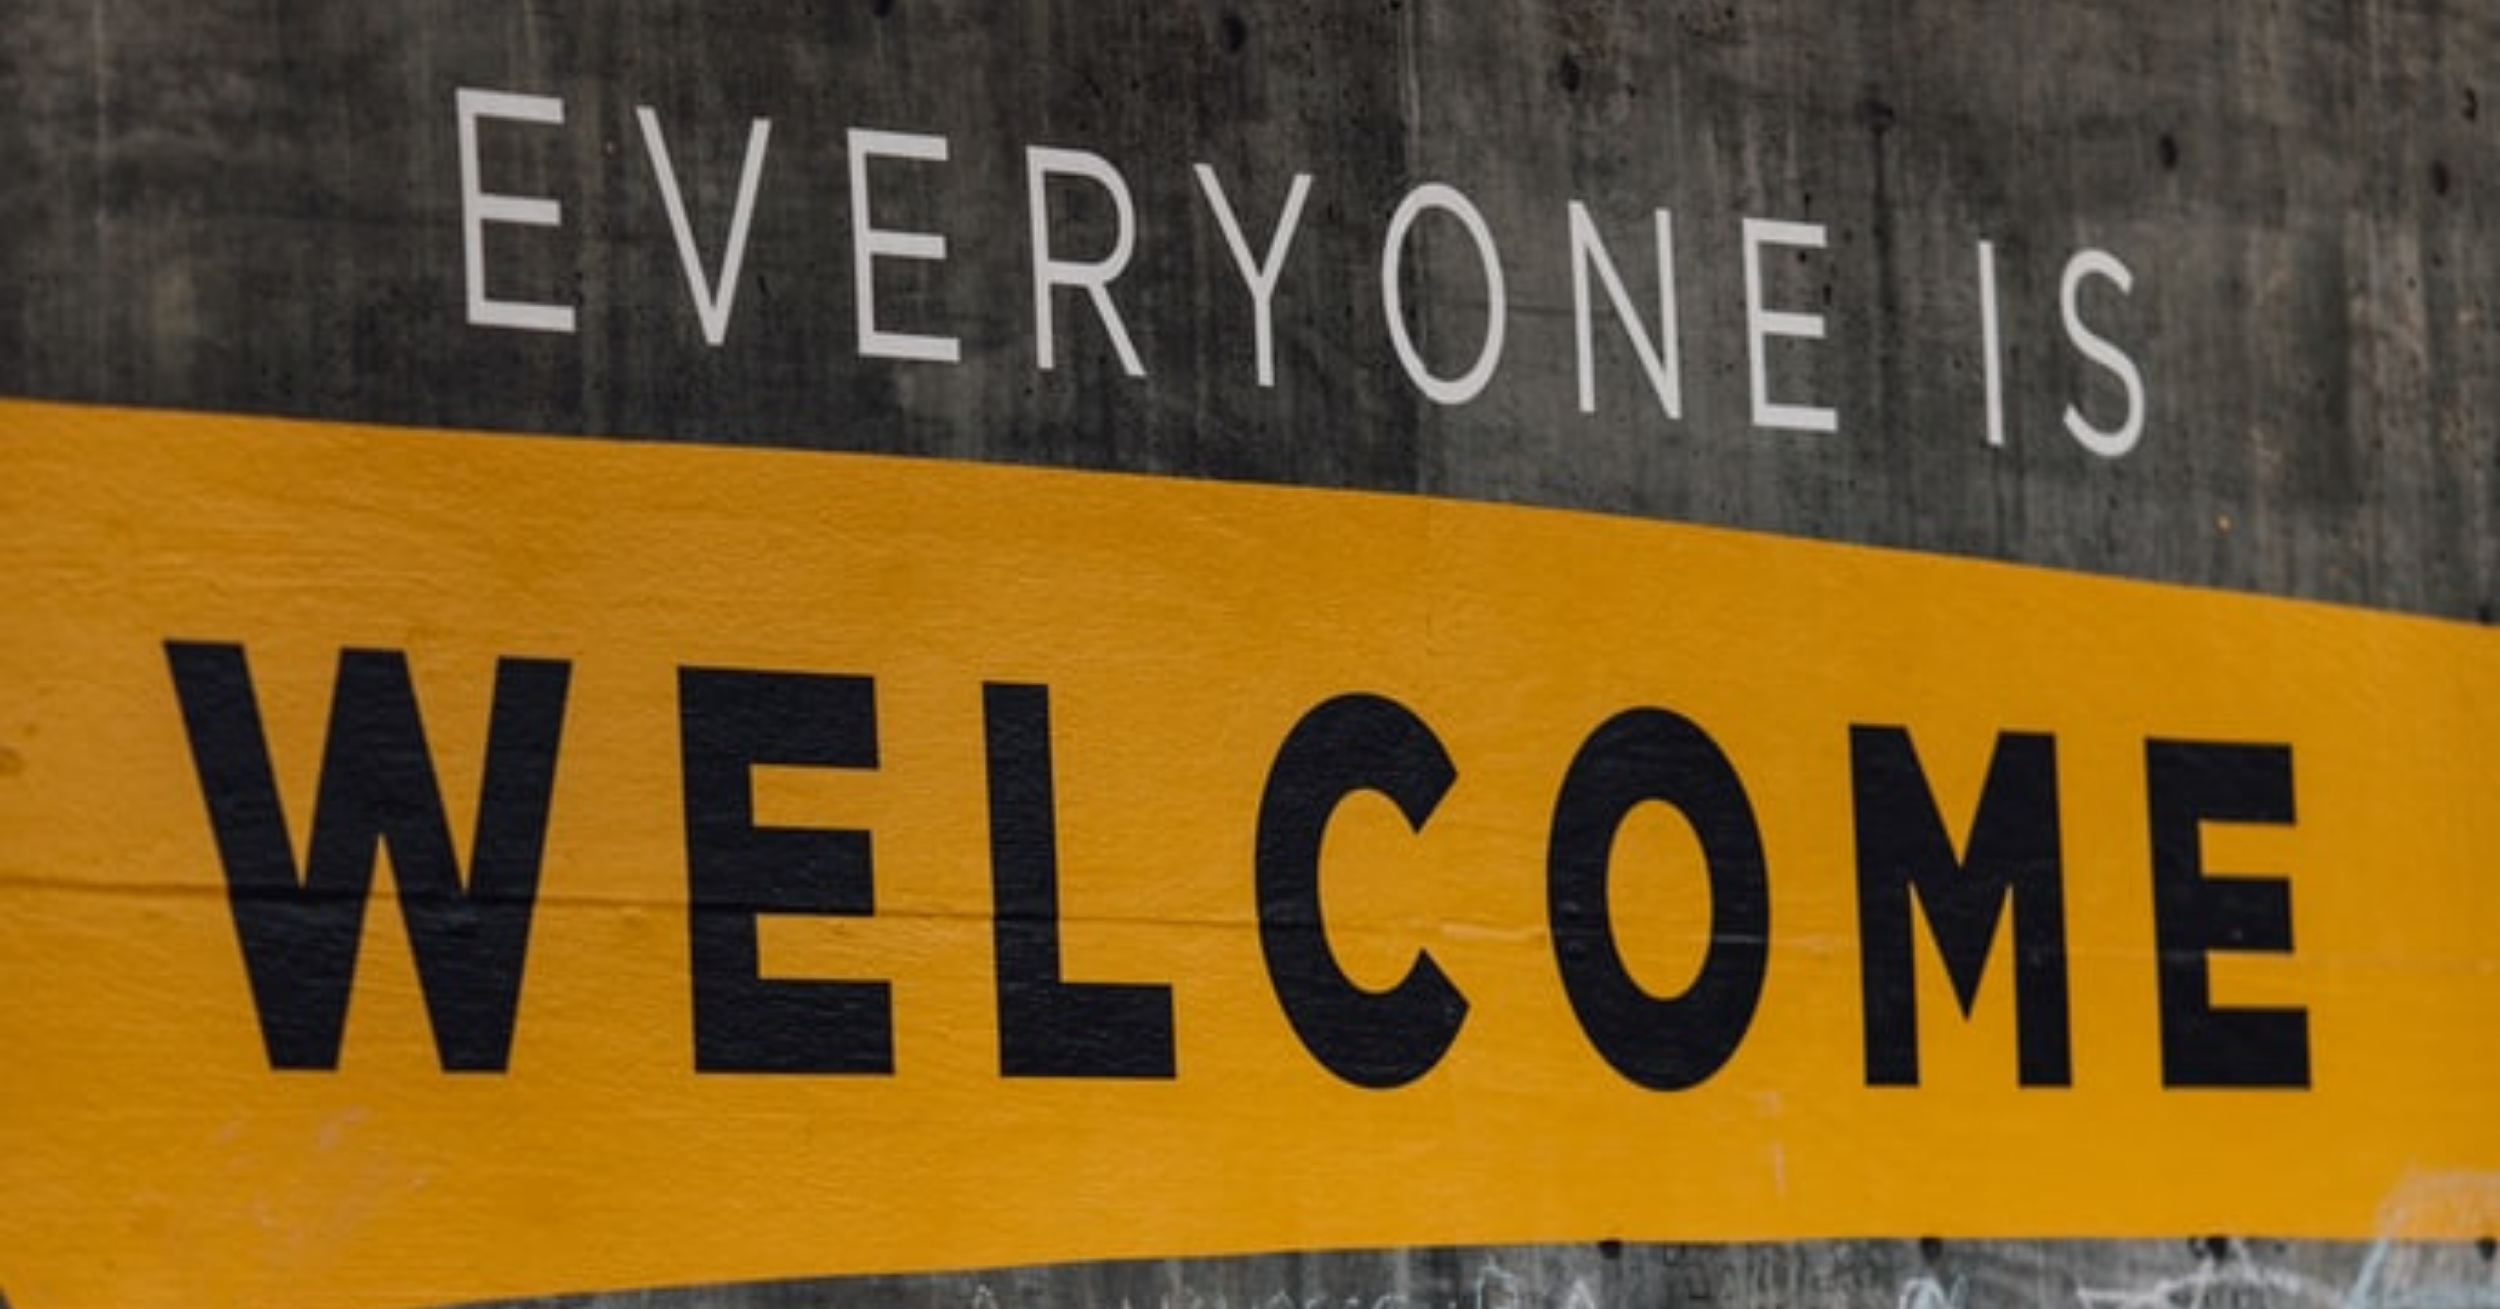 """text """"Welcome everyone"""""""